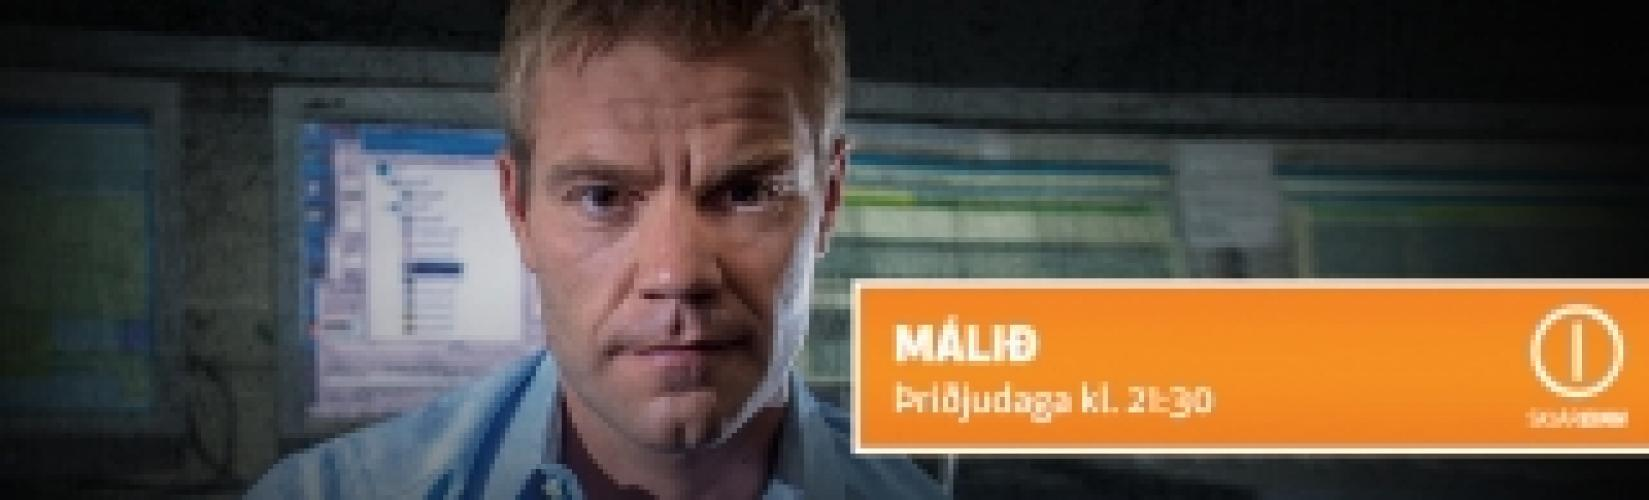 Málið next episode air date poster